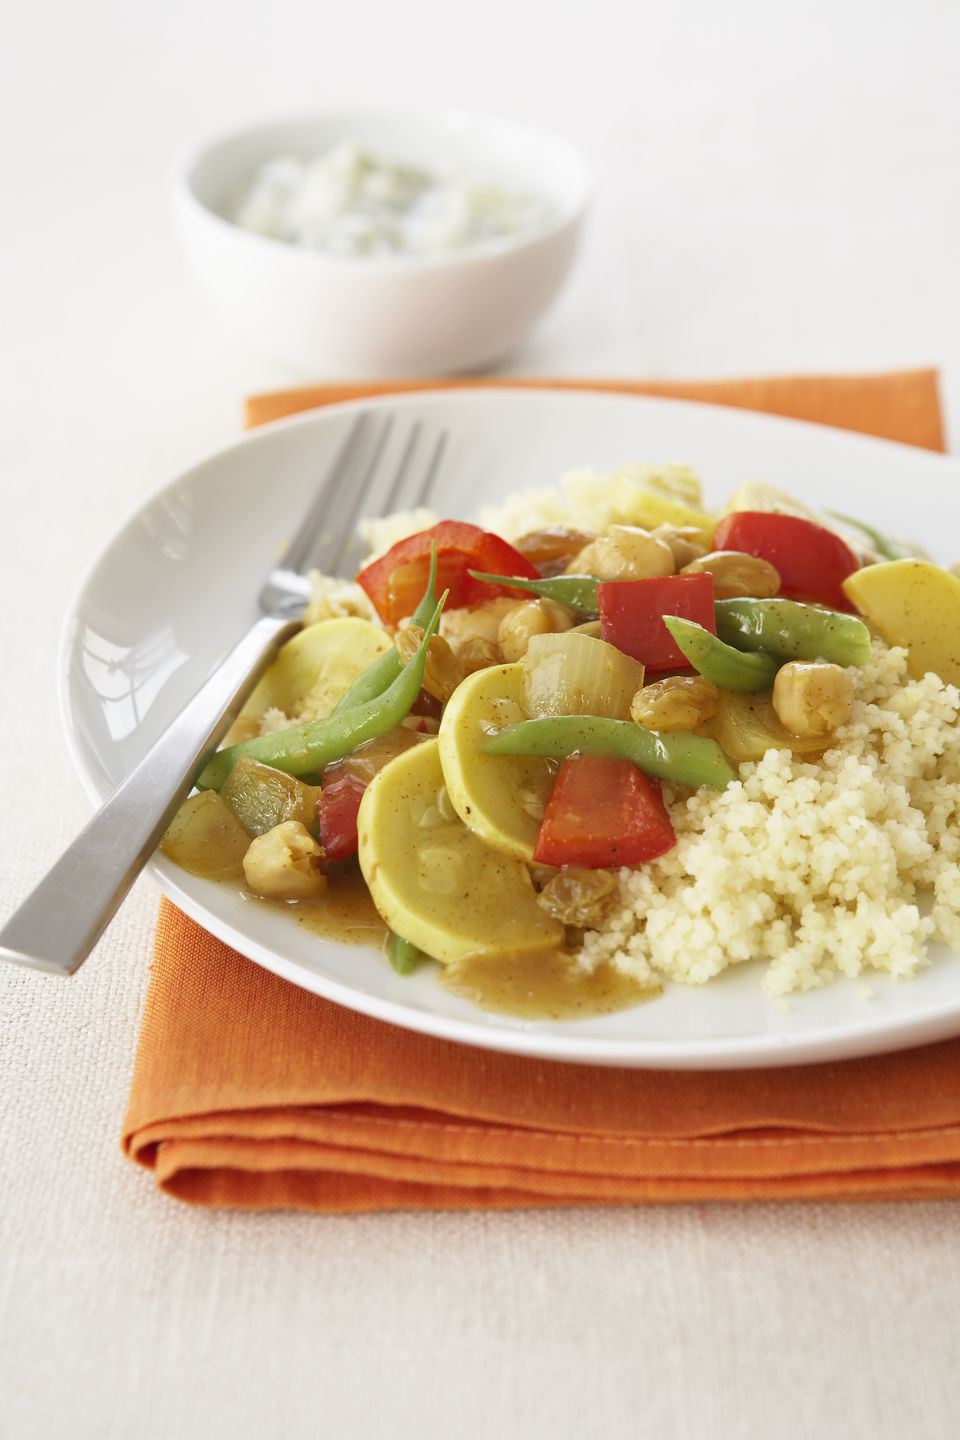 Japanese curry with grilled vegetables